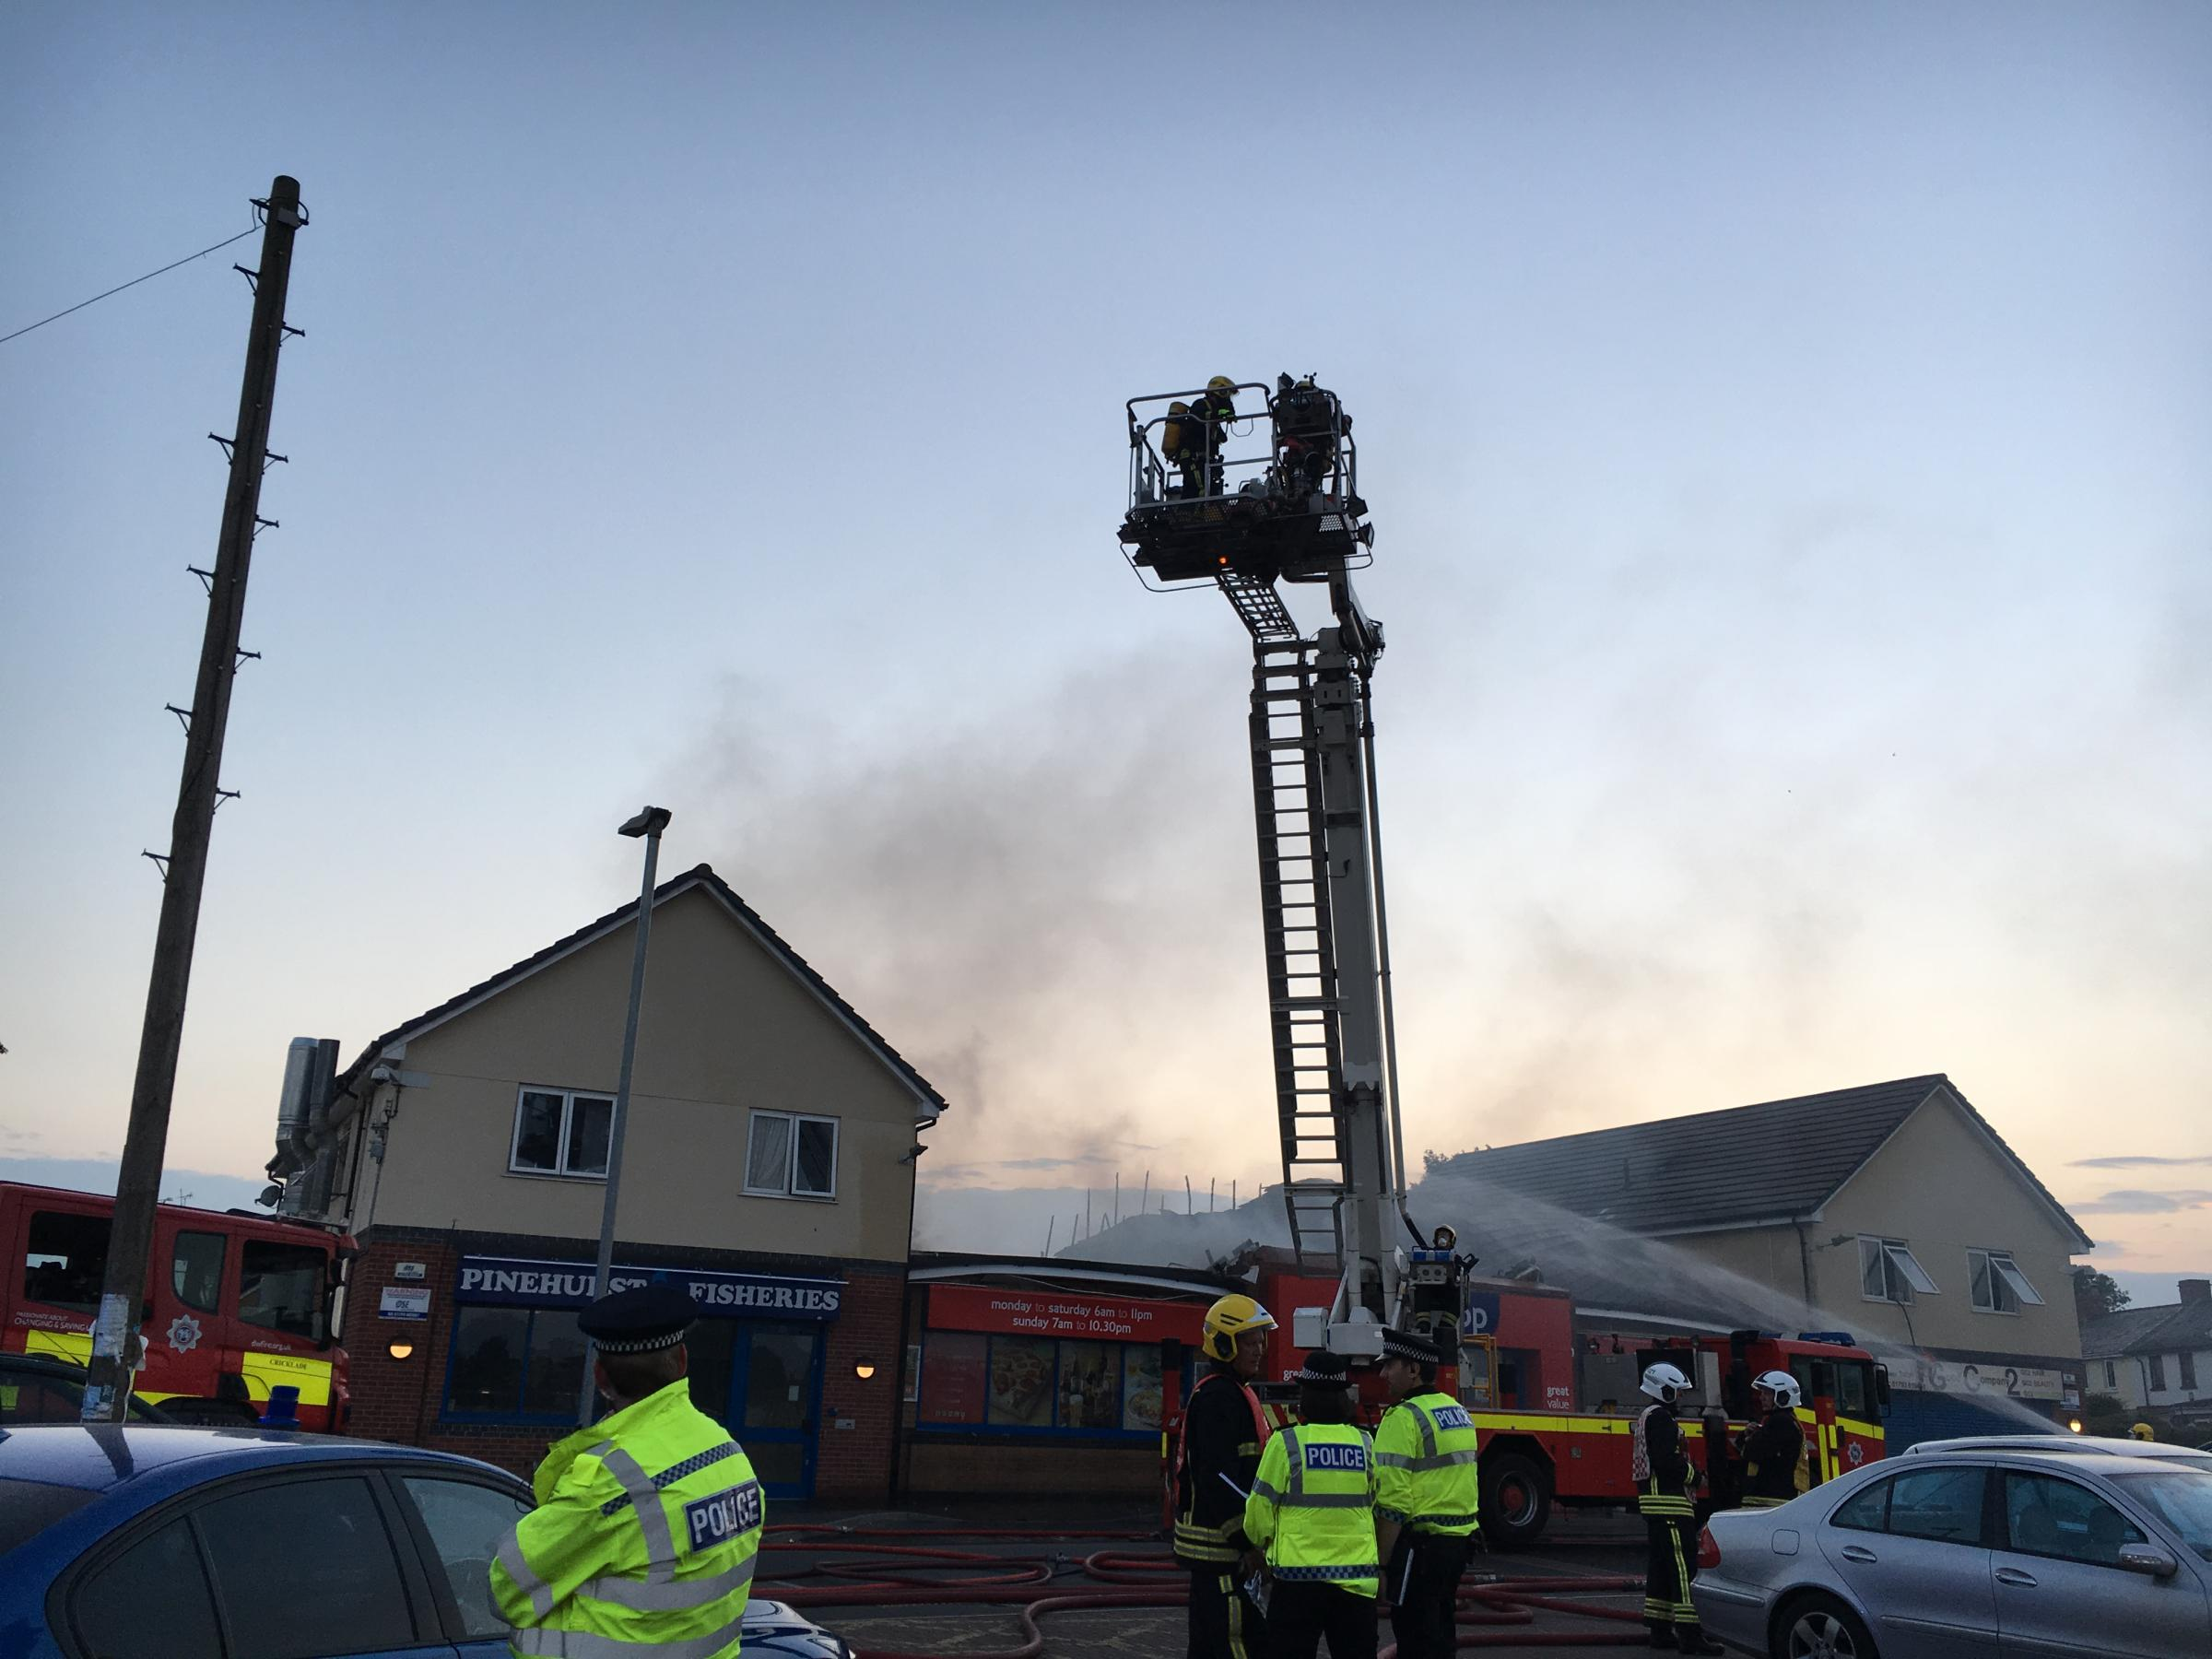 APPEAL: Police ask for witnesses to come forward after One Stop fire